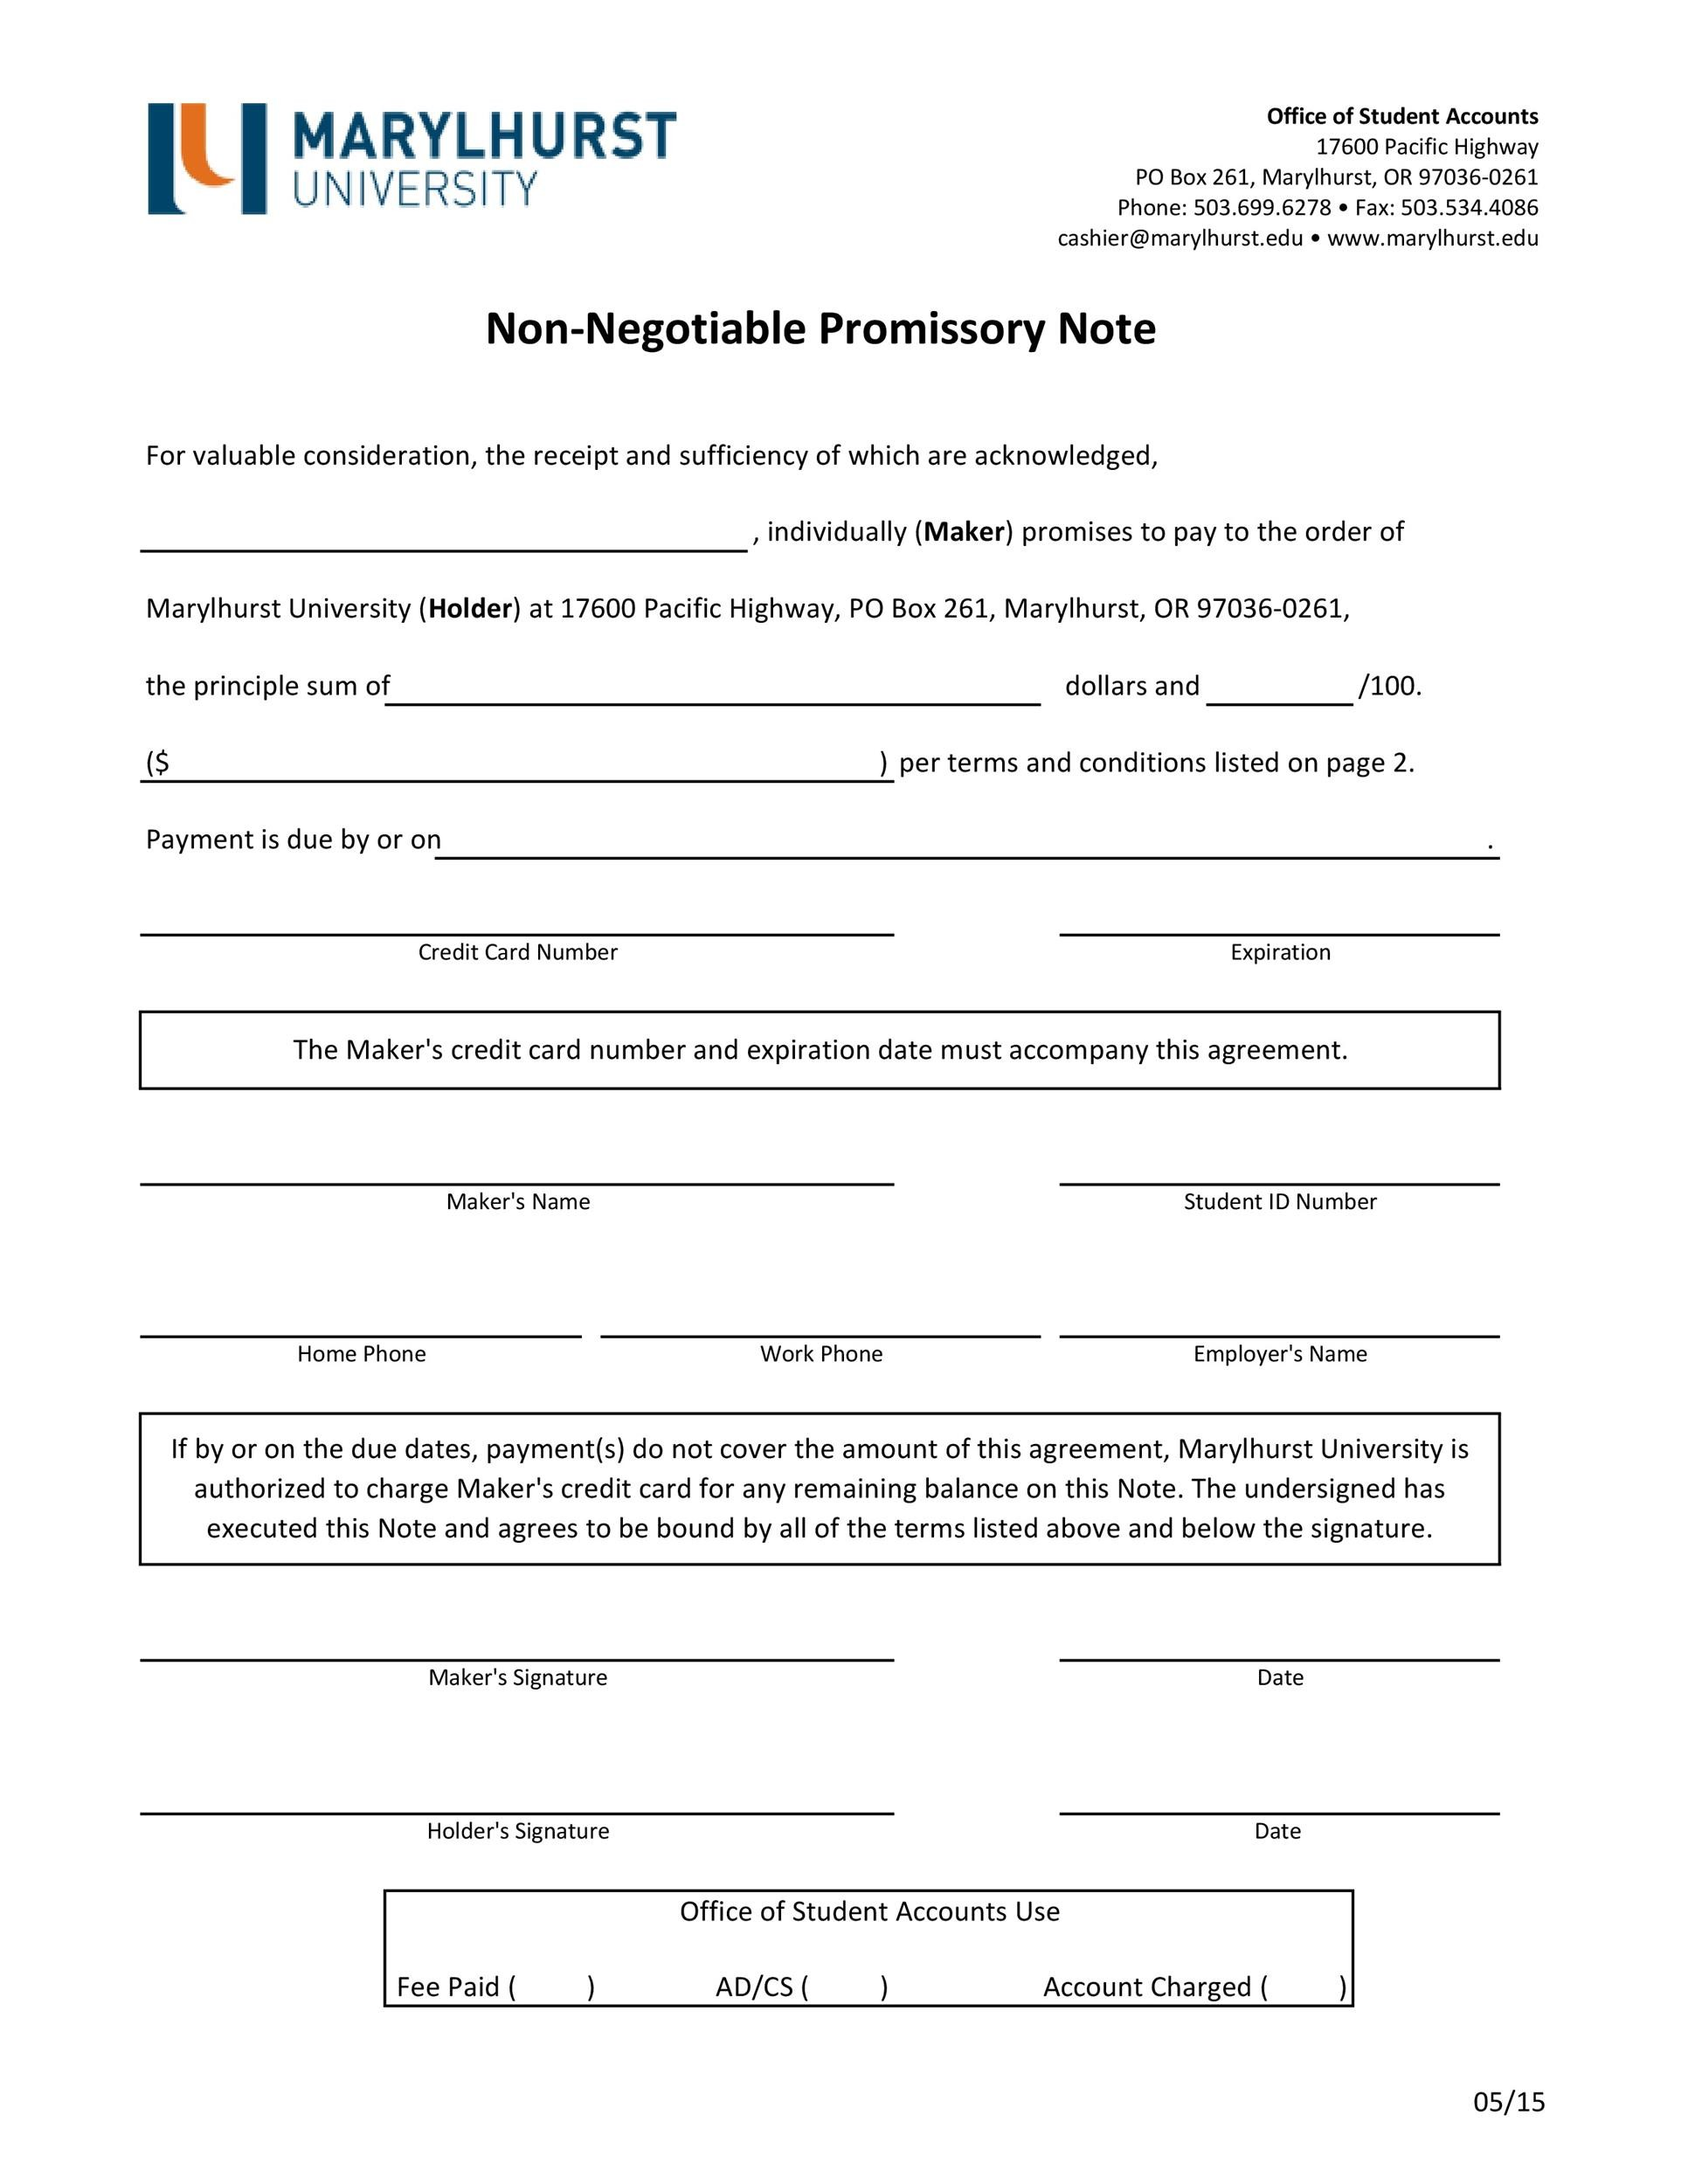 Wonderful Printable Promissory Note Template 04 Intended For Free Promissory Note Templates